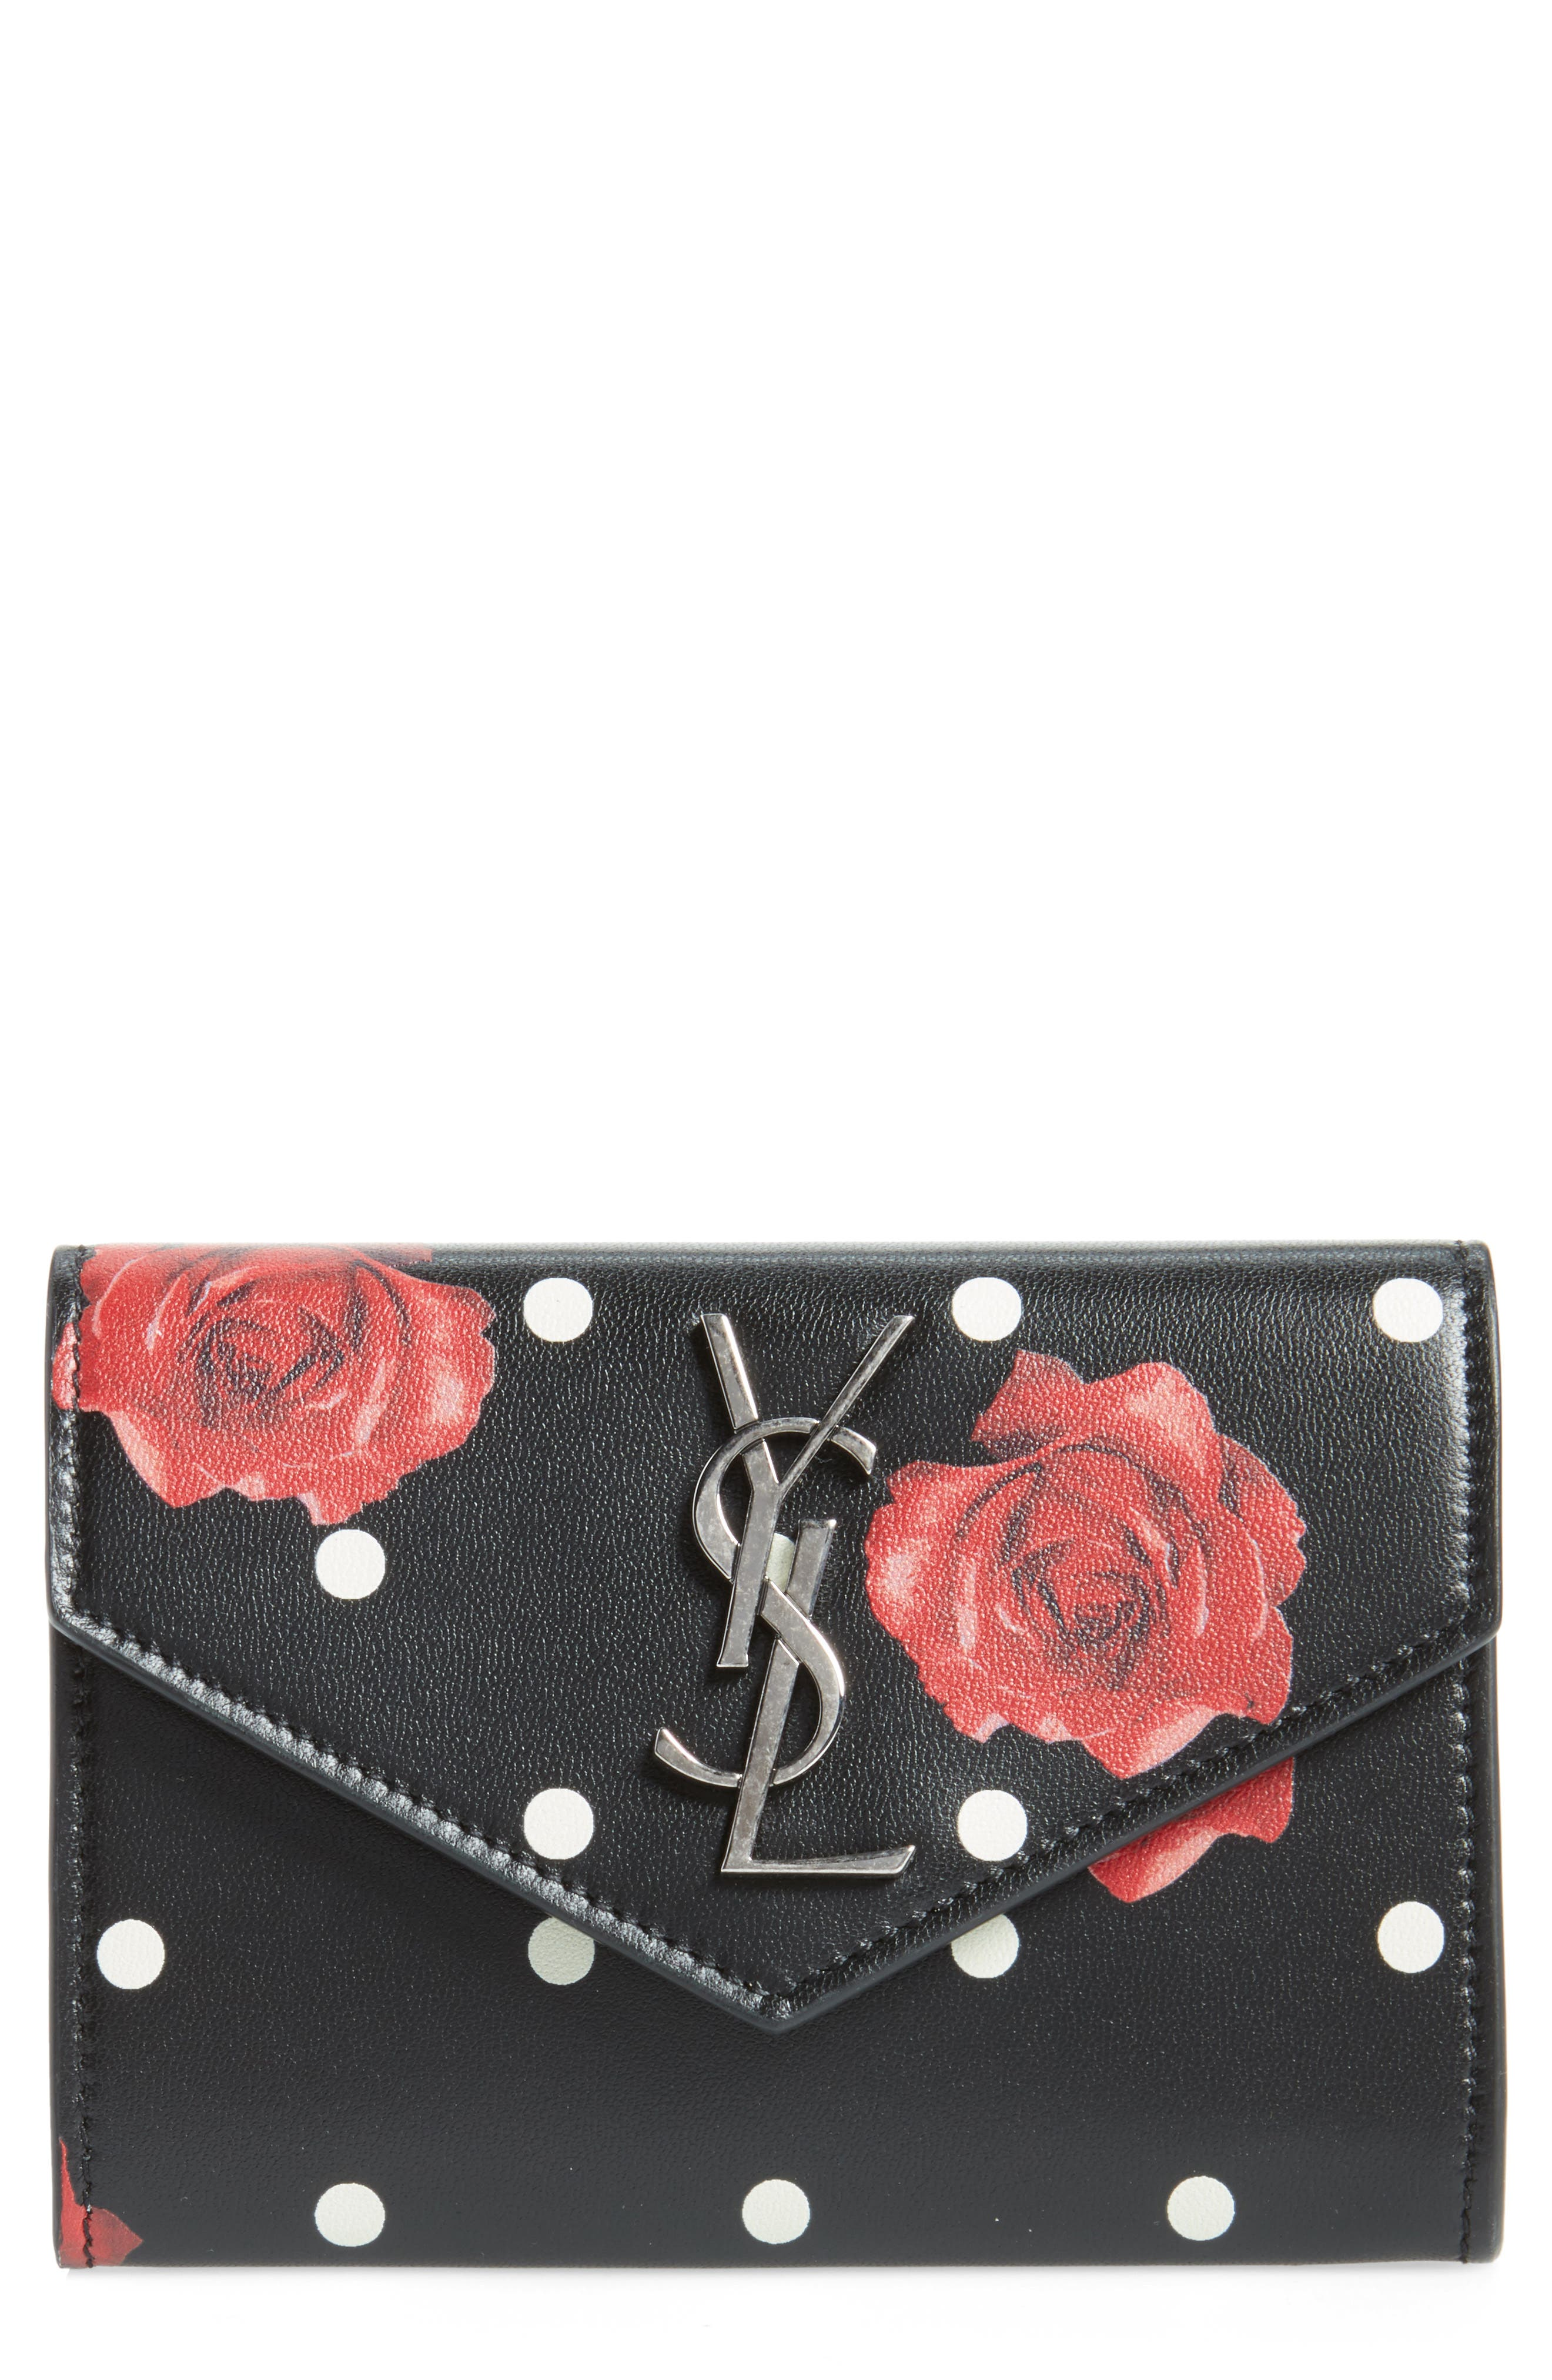 Rose & Polka Dot Small Leather French Wallet,                             Main thumbnail 1, color,                             Black/ Multi